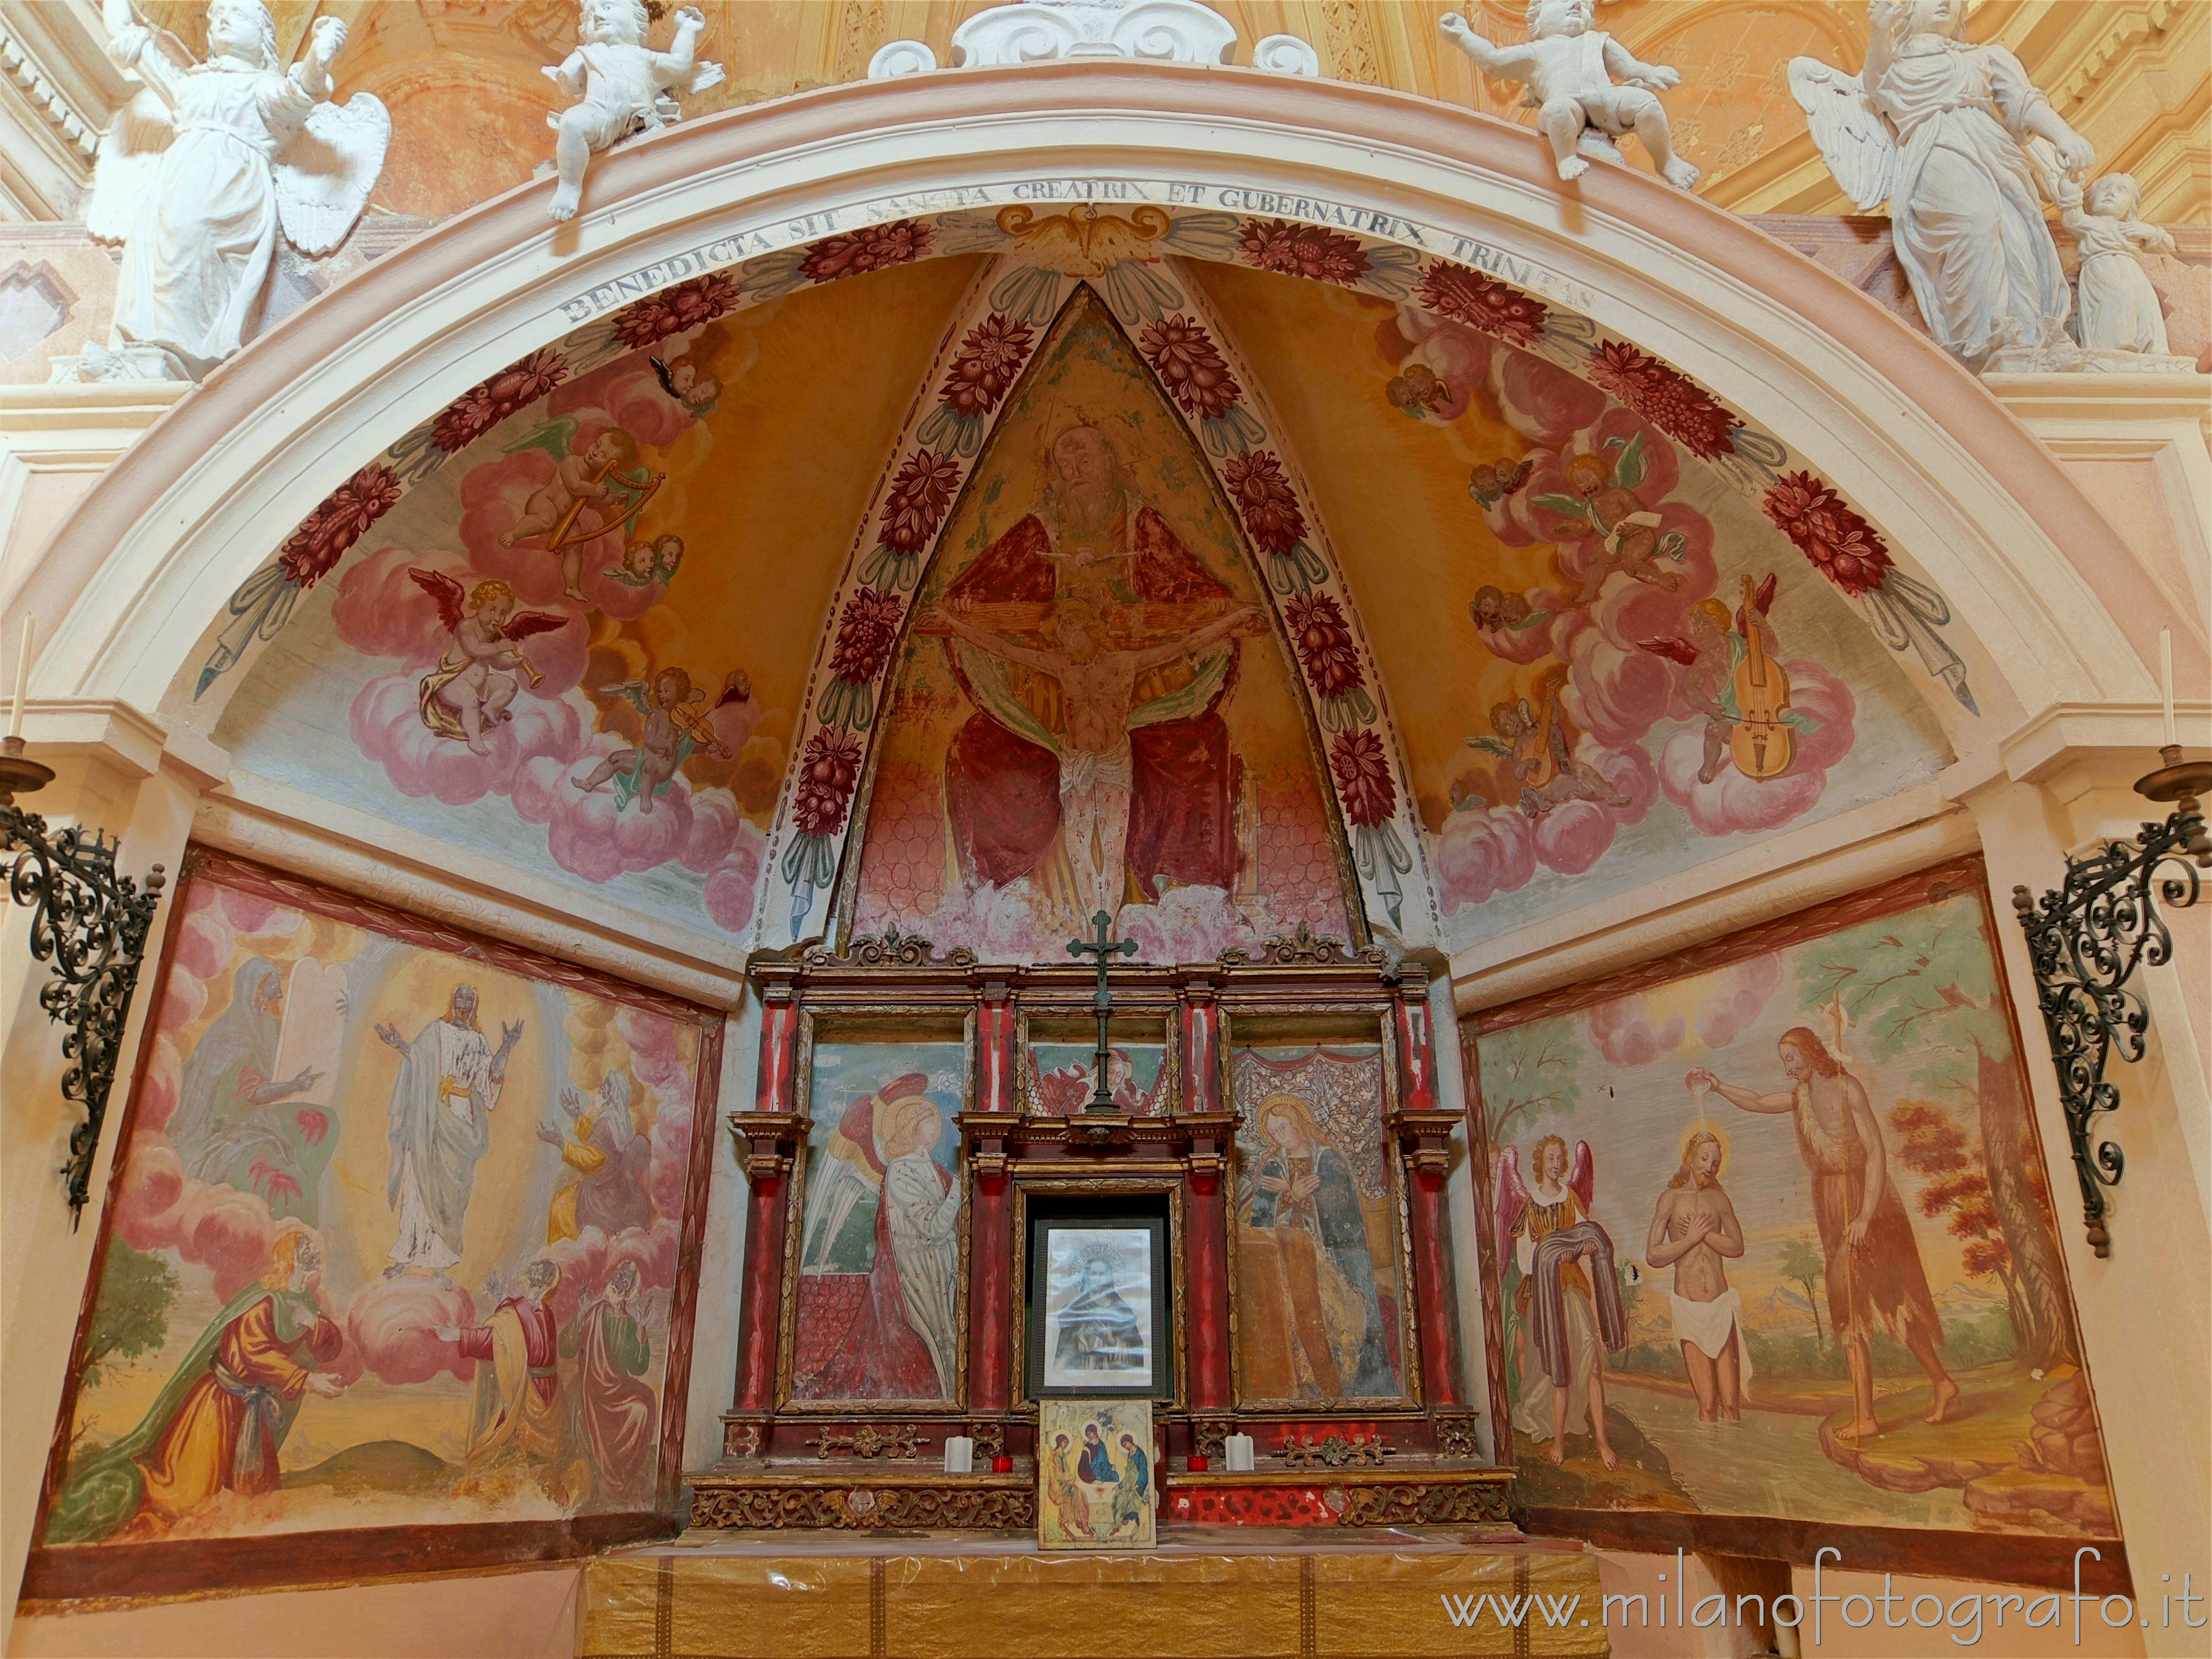 Sagliano Micca (Biella, Italy): Apse of the Oratory of the Most Holy Trinity - Sagliano Micca (Biella, Italy)